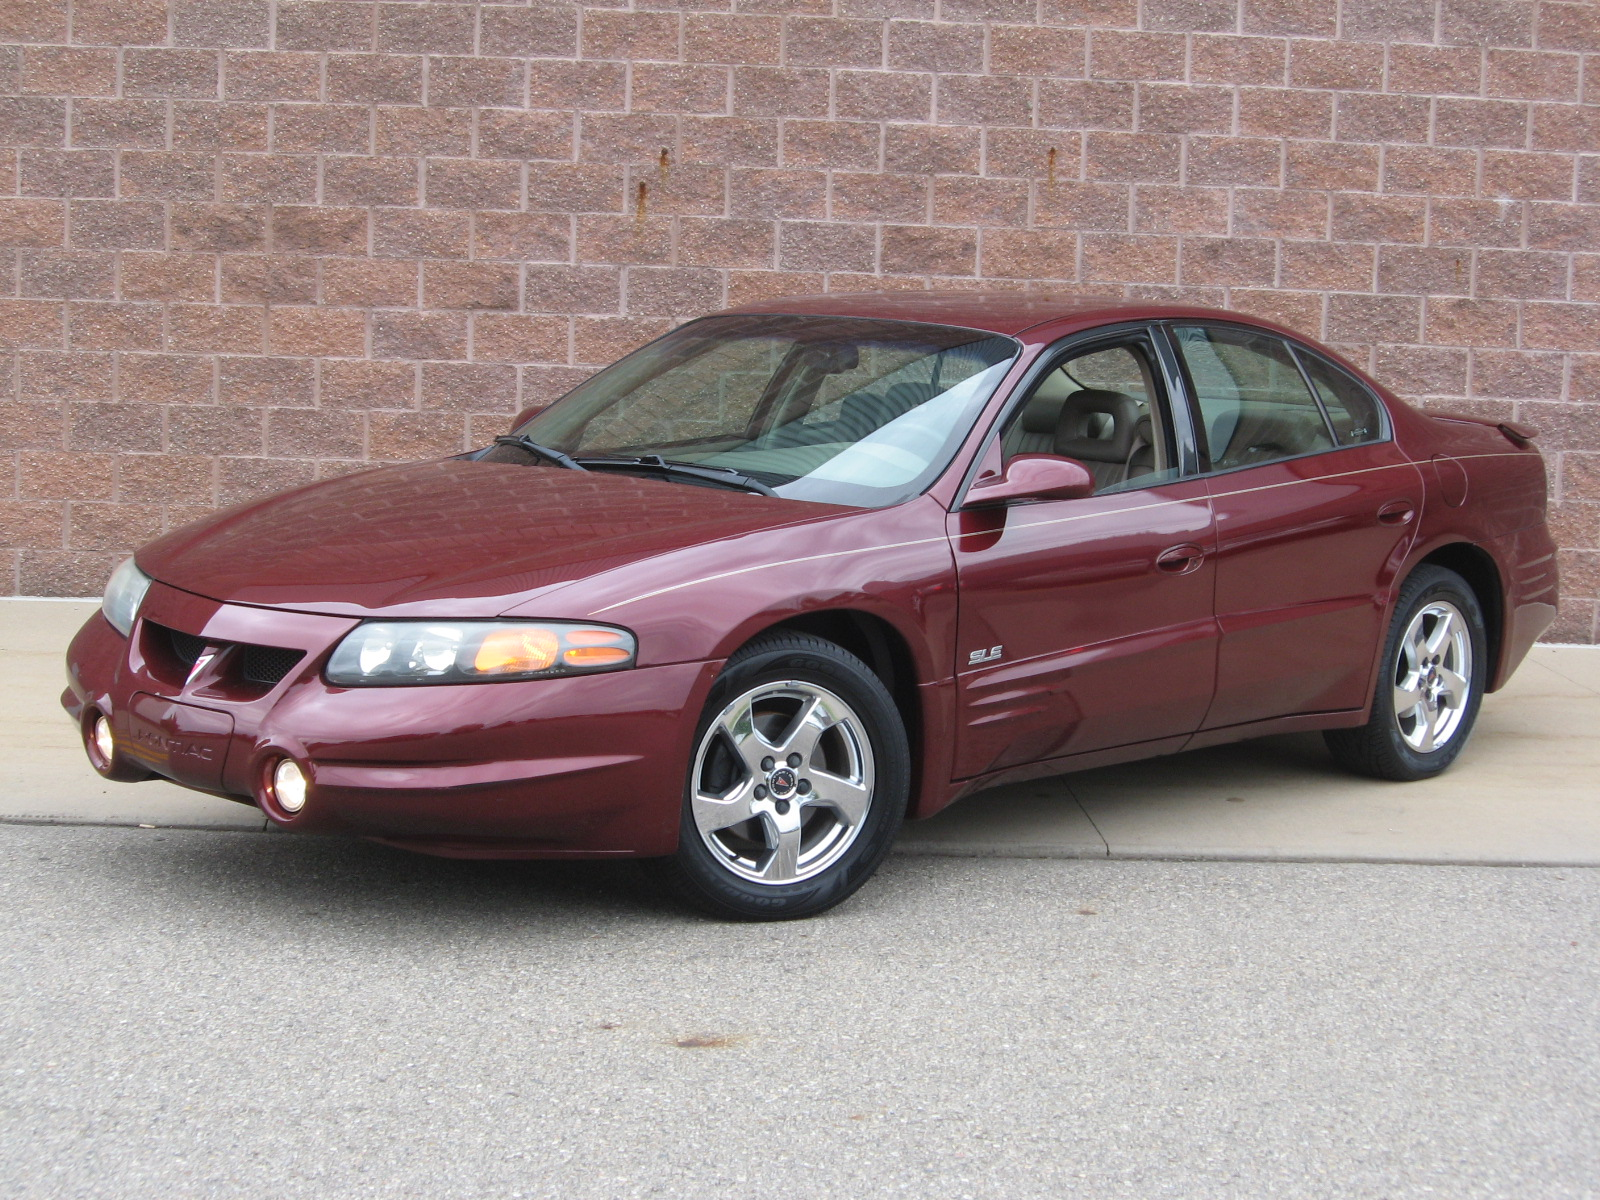 2002 Pontiac Bonneville Information And Photos Momentcar